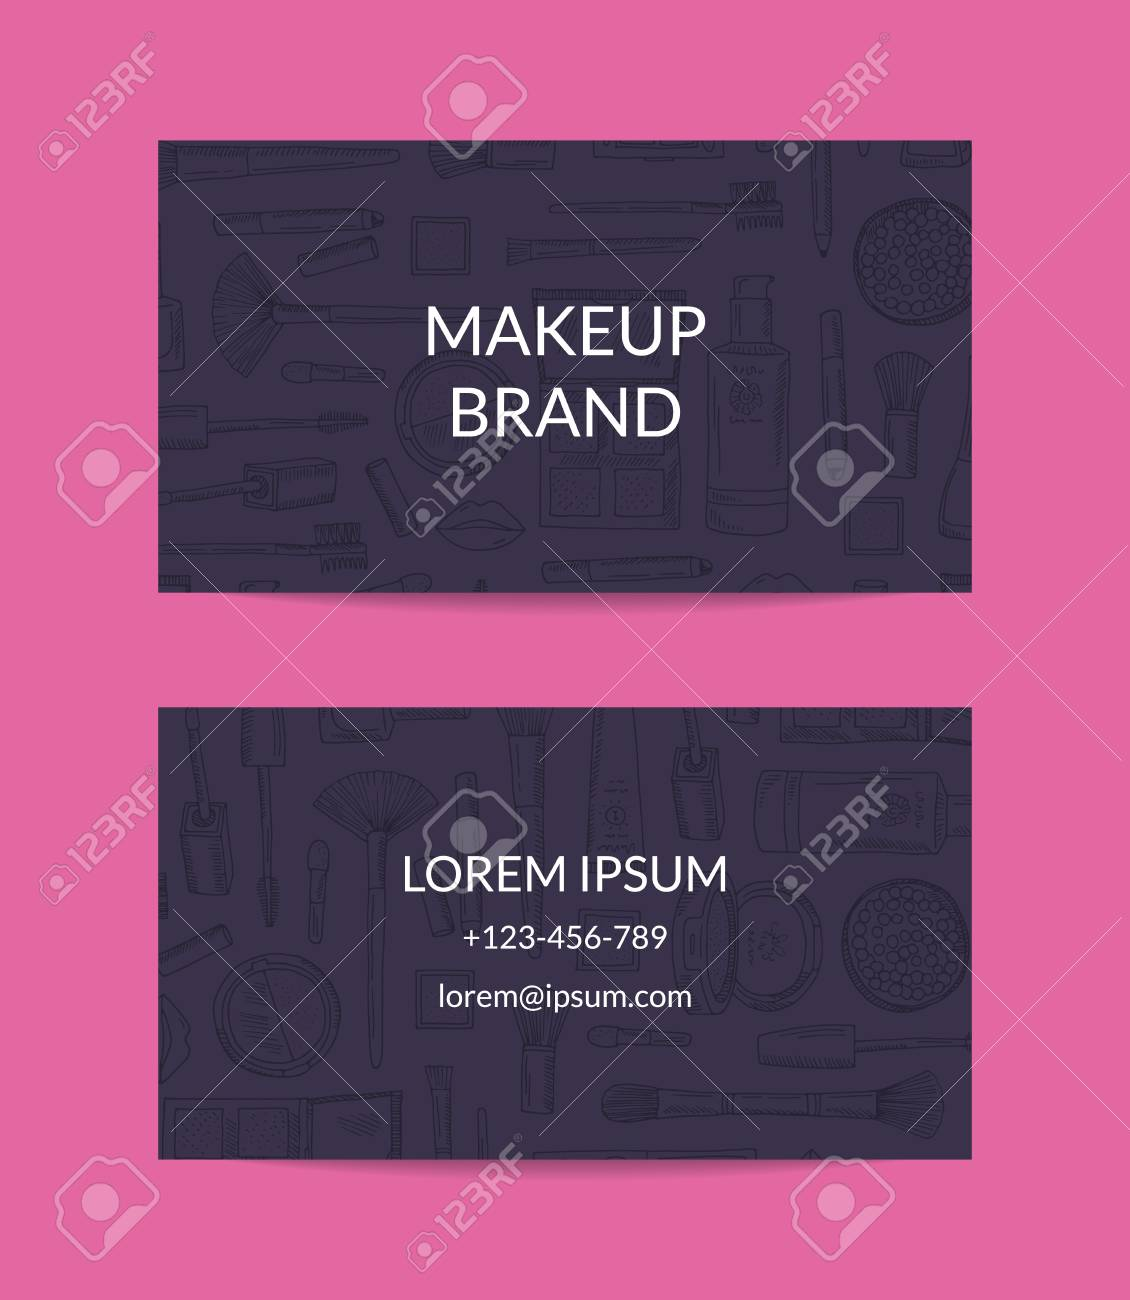 Vector business card template for beauty brand or makeup artist vector vector business card template for beauty brand or makeup artist accmission Choice Image